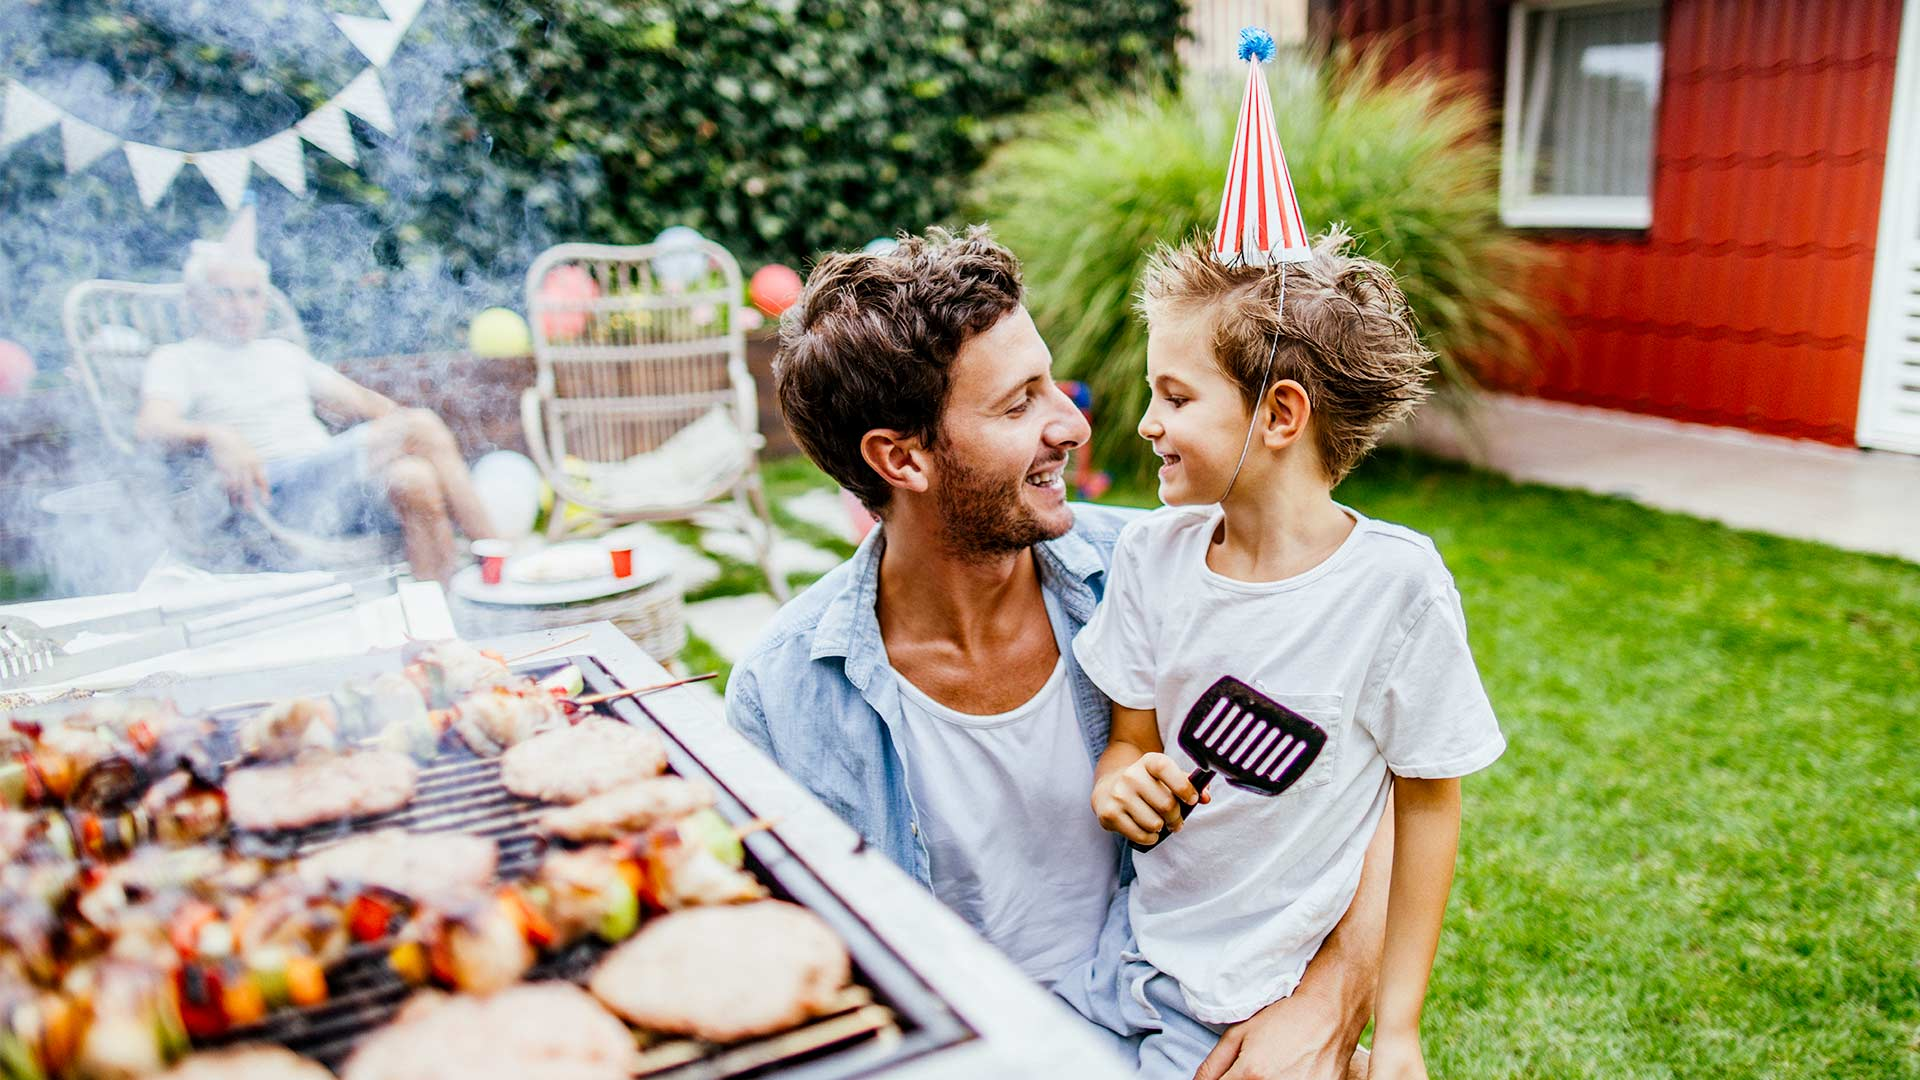 Healthy Summer Grilling Ideas Kids Will Love